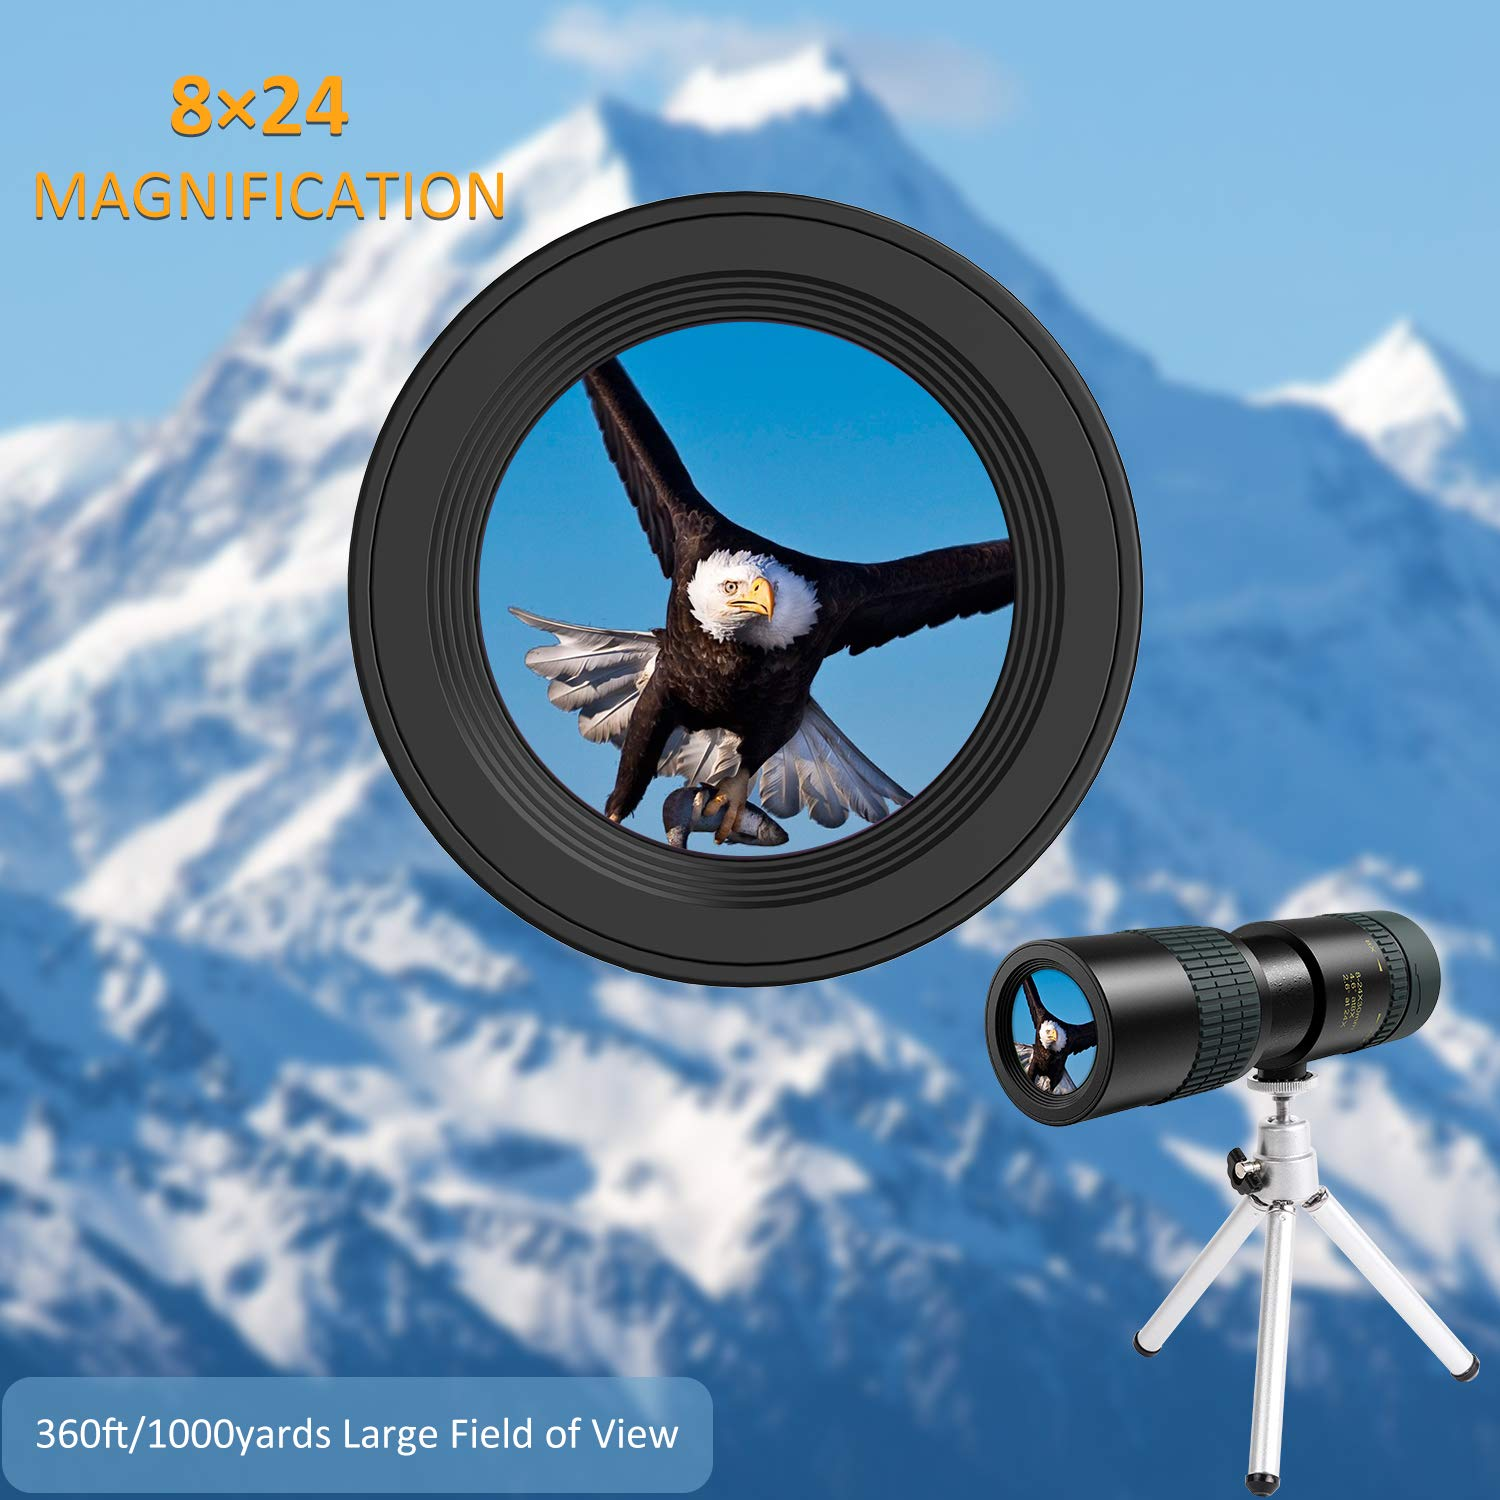 Monocular Telescope for Adults 8-24 30 High Power Monocular with Phone Holder Tripod for Smartphone, Waterproof Monocular with FMC BAK4 Prism 30mm Lens Dual Focus for Night Vision Bird Watching Hunt